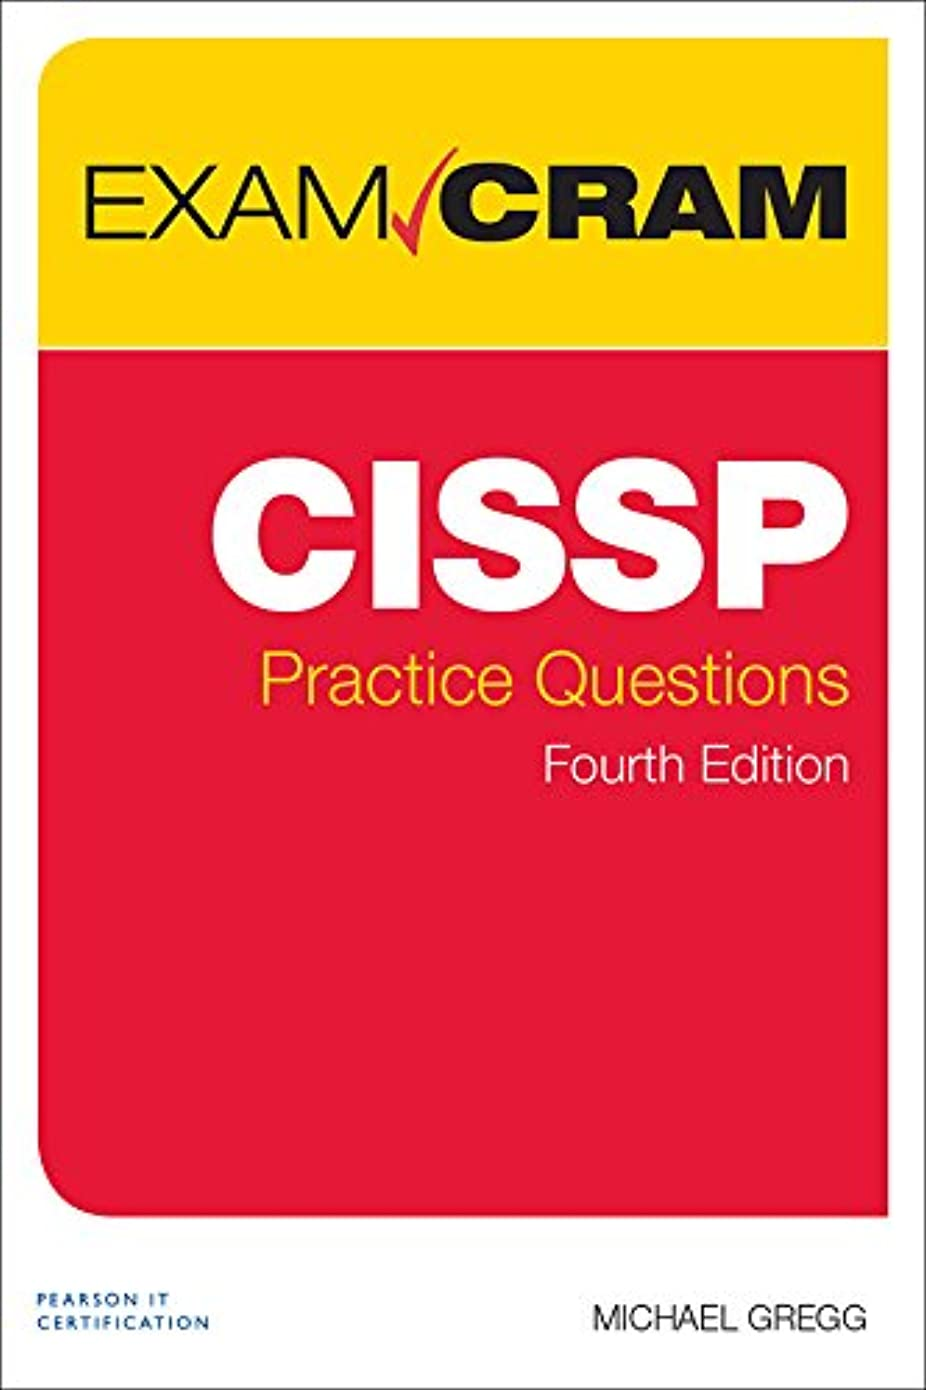 インタネットを見る腕成長CISSP Practice Questions Exam Cram: CISSP Pract Quest Exam Cram_4 (English Edition)